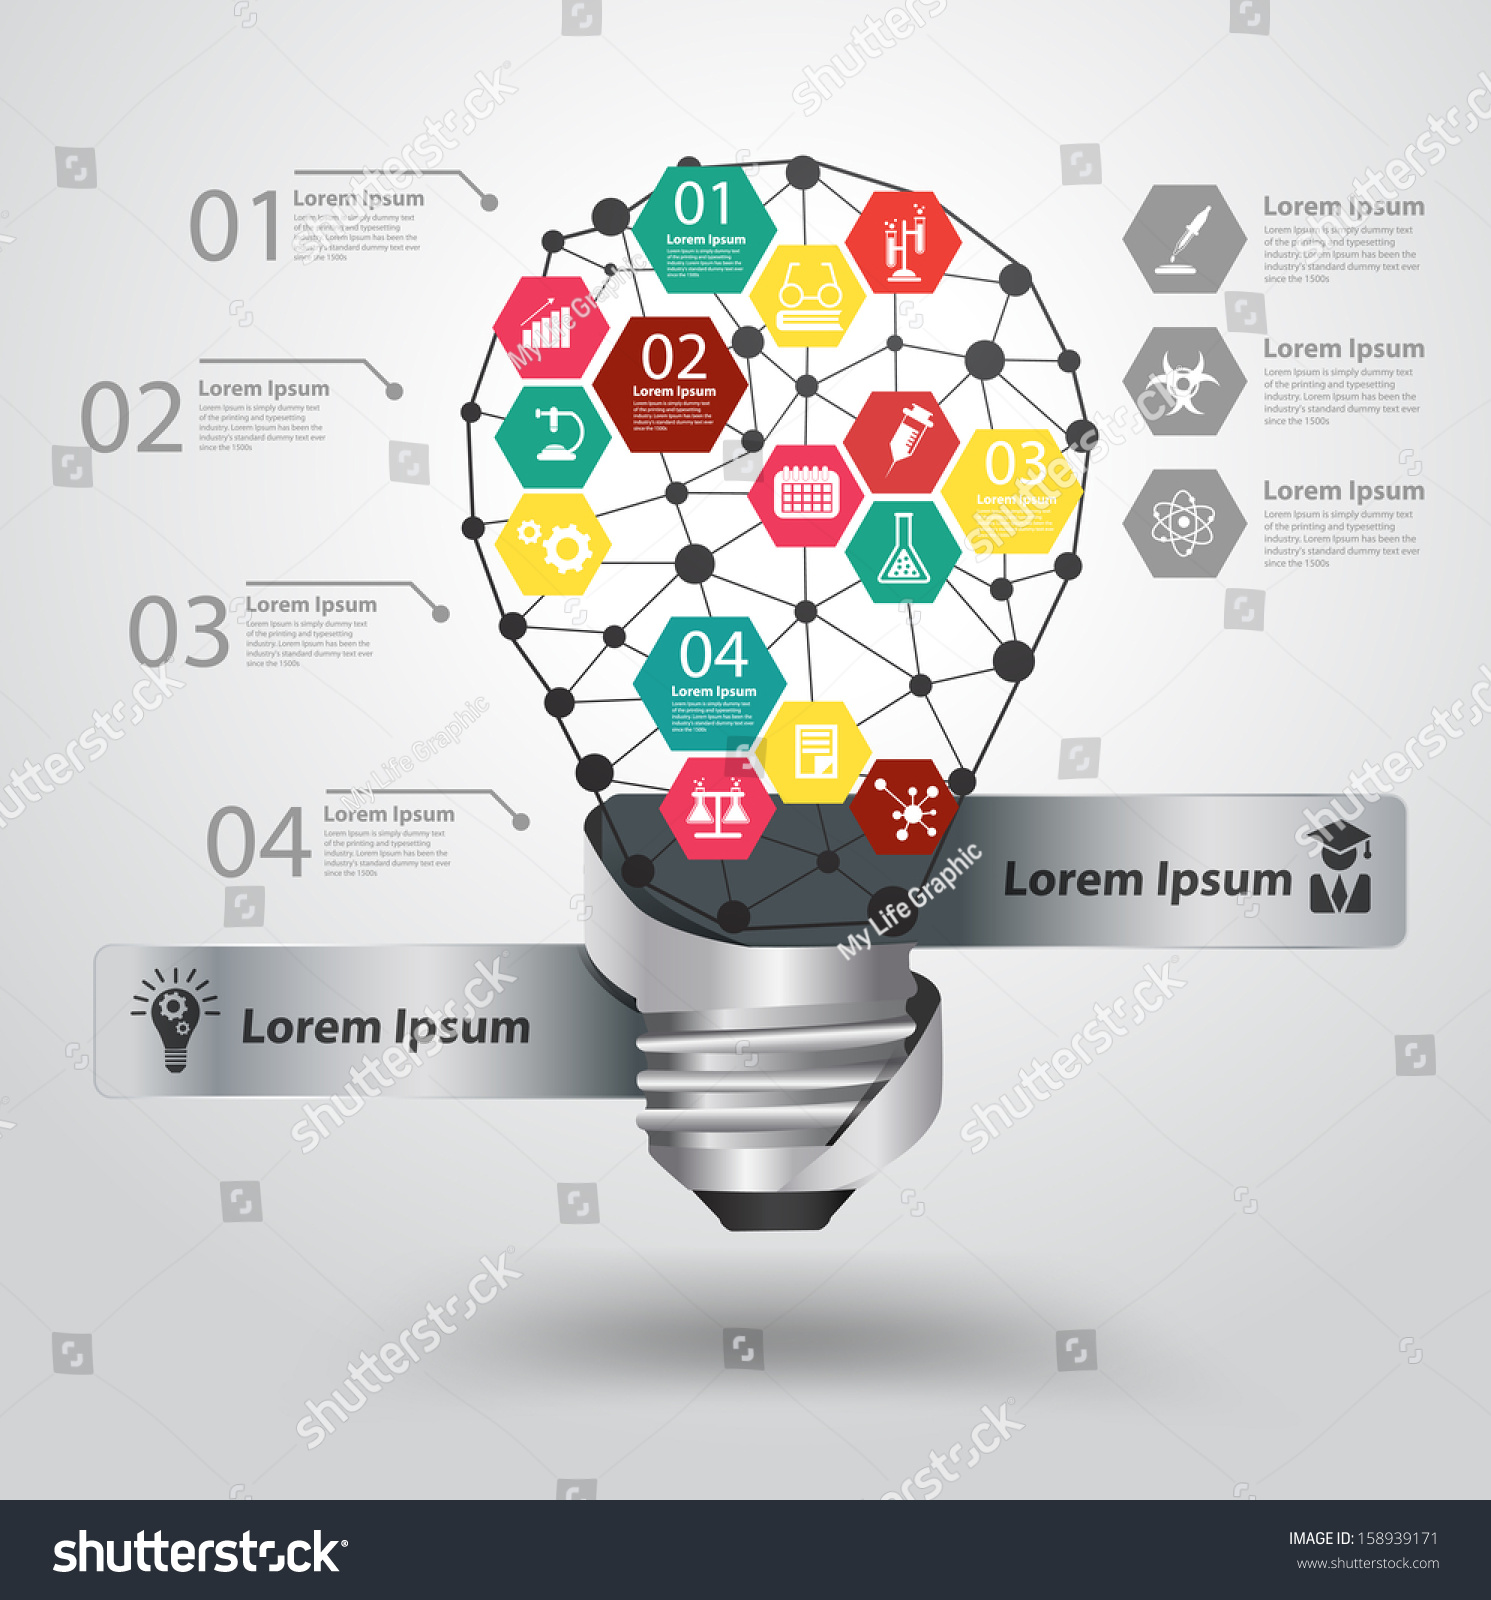 Creative Light Bulb Abstract Infographic Hexagon Stock Vector Incandescent Diagram Modern Design Template Workflow Layout Step Up